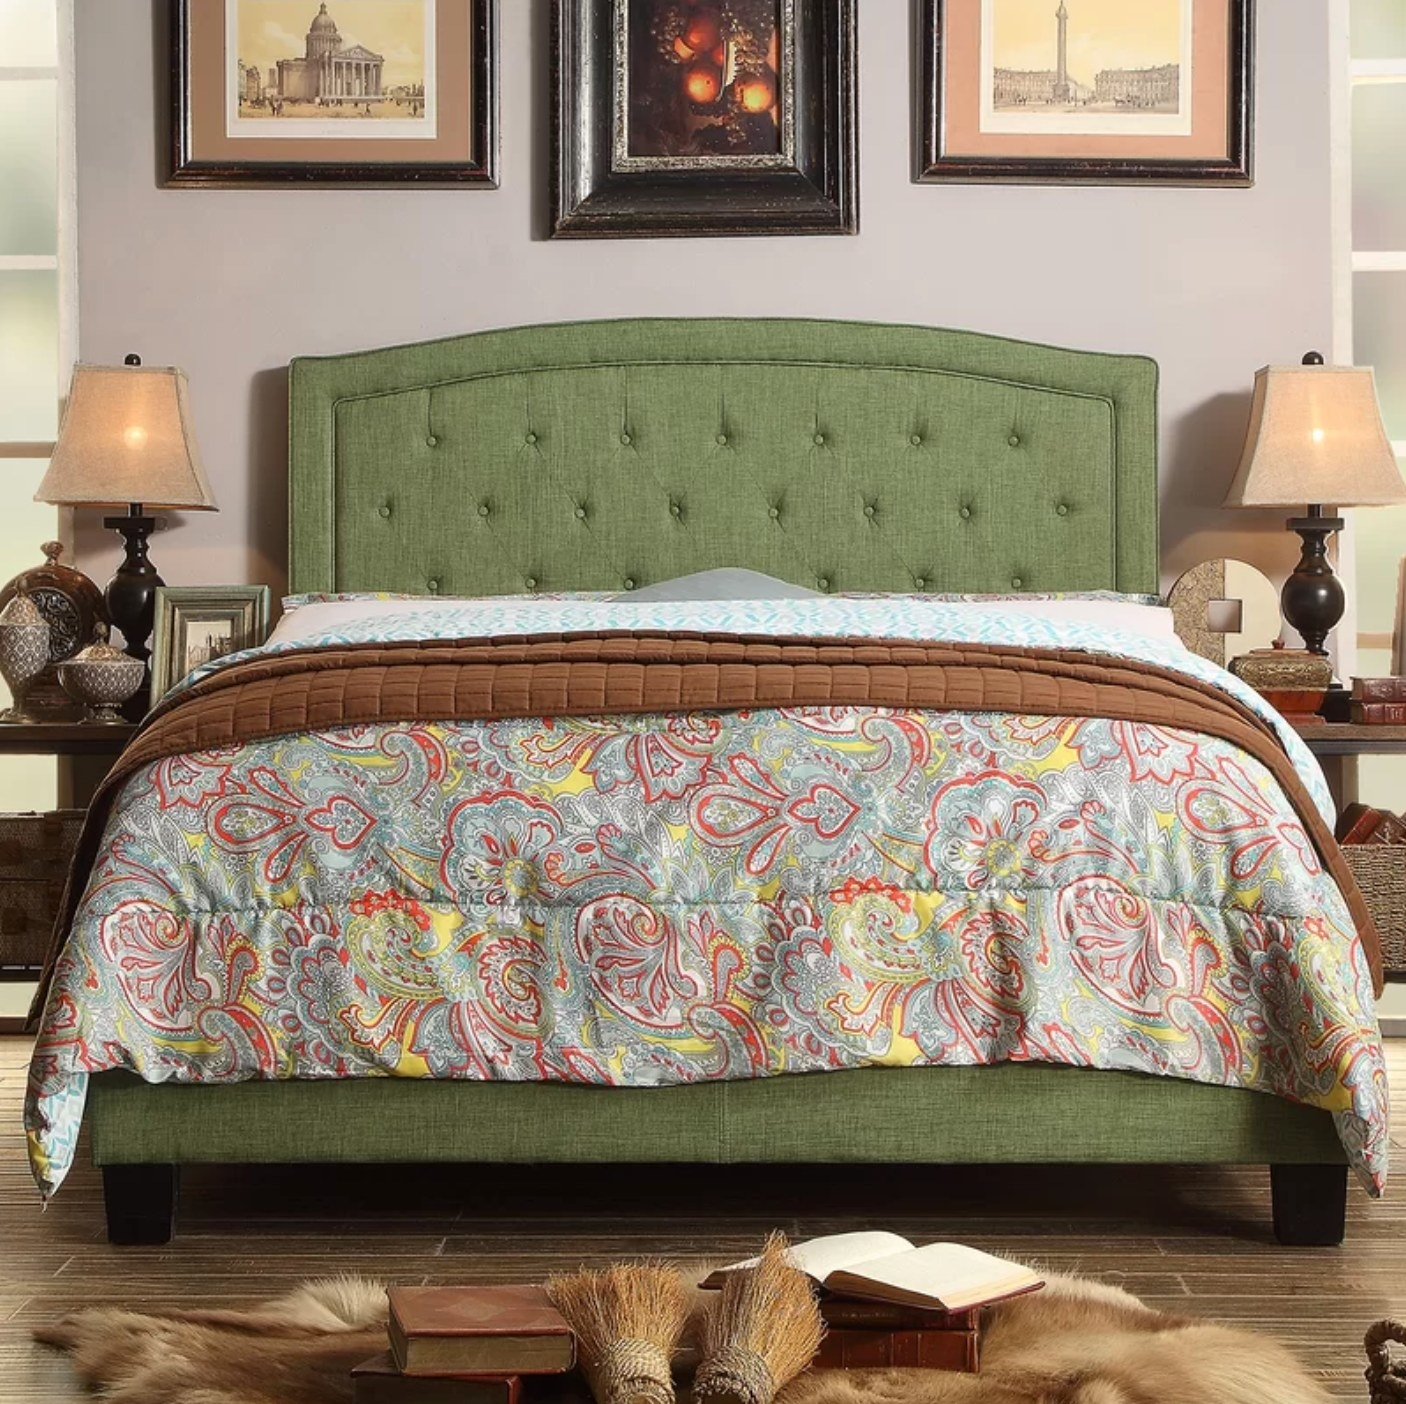 The upholstered low standard bed in holiday green